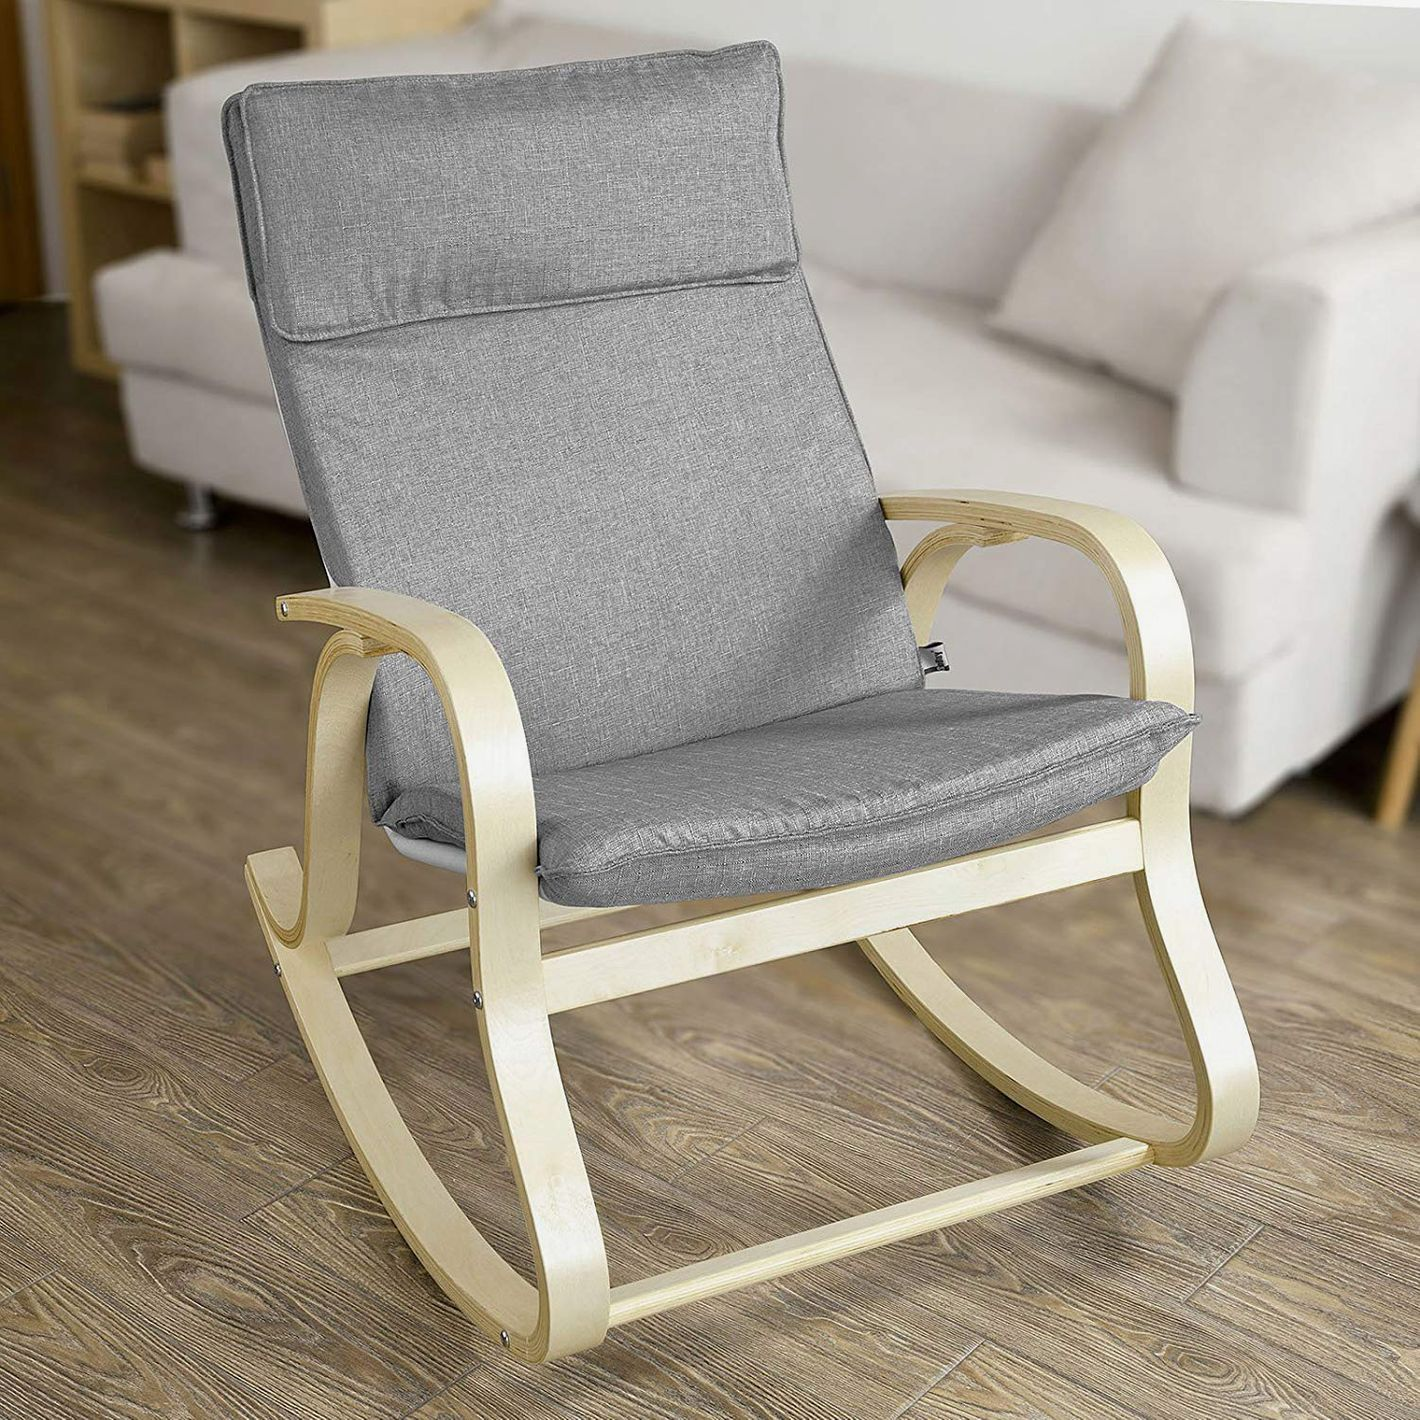 12 best dorm room chairs - Sedia a dondolo prezzi ...